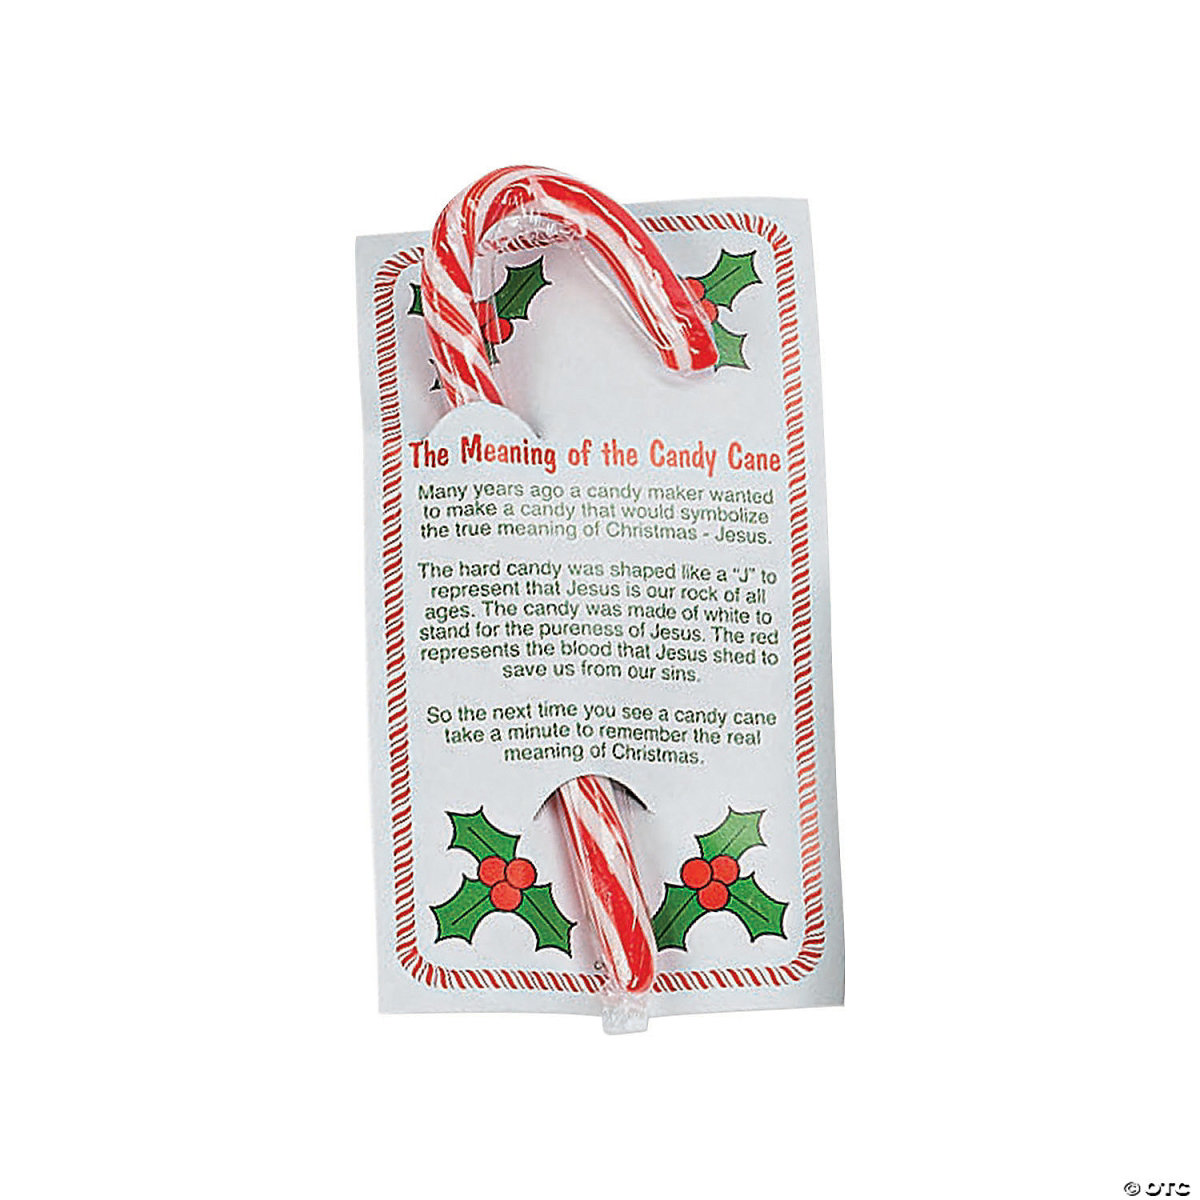 Candy canes are often handed out with cards that explain their religious significance.